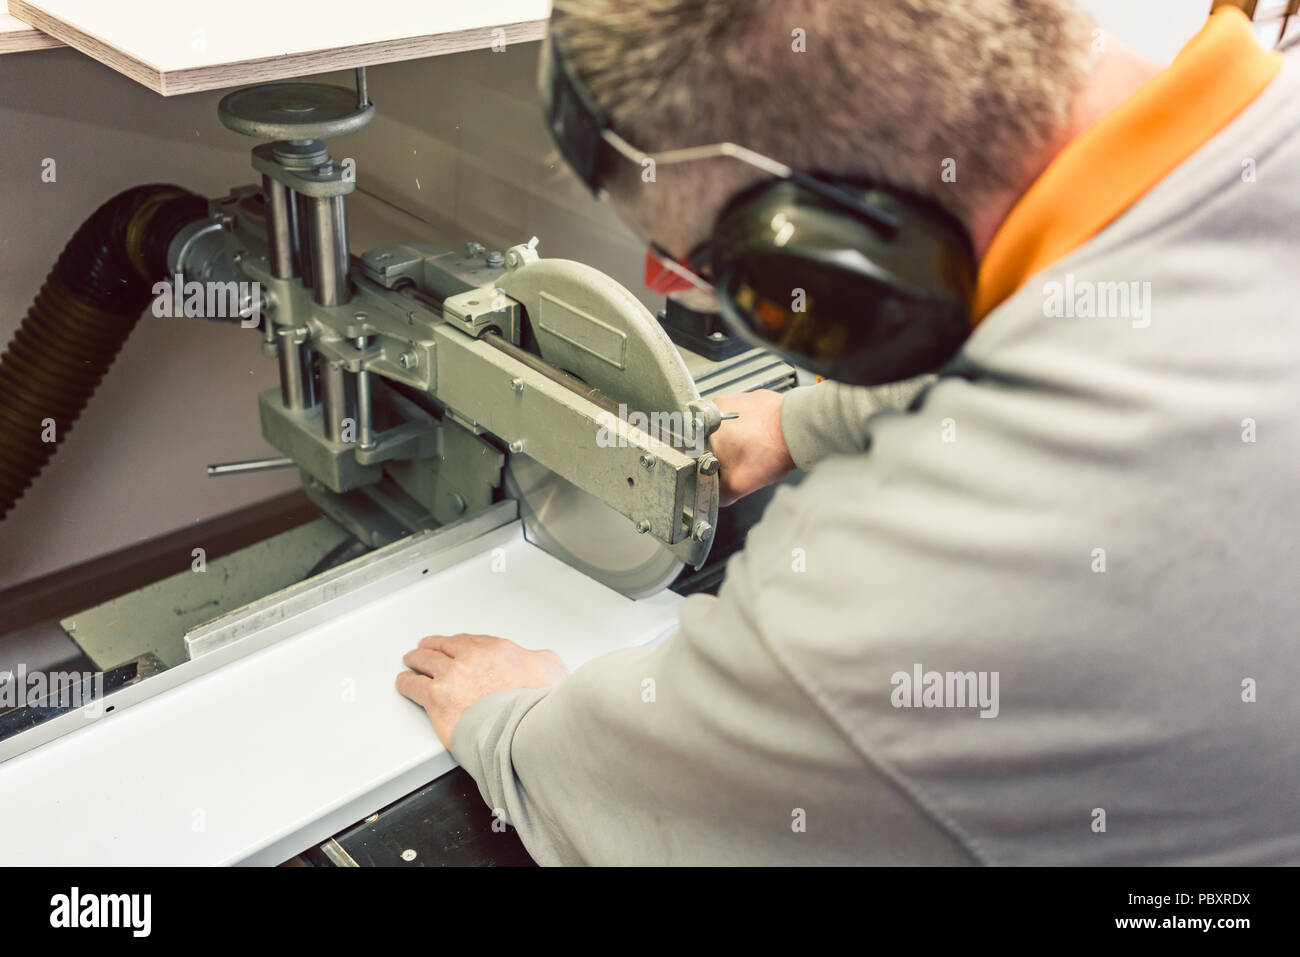 Tinner cutting metal sheets in his workshop with saw - Stock Image